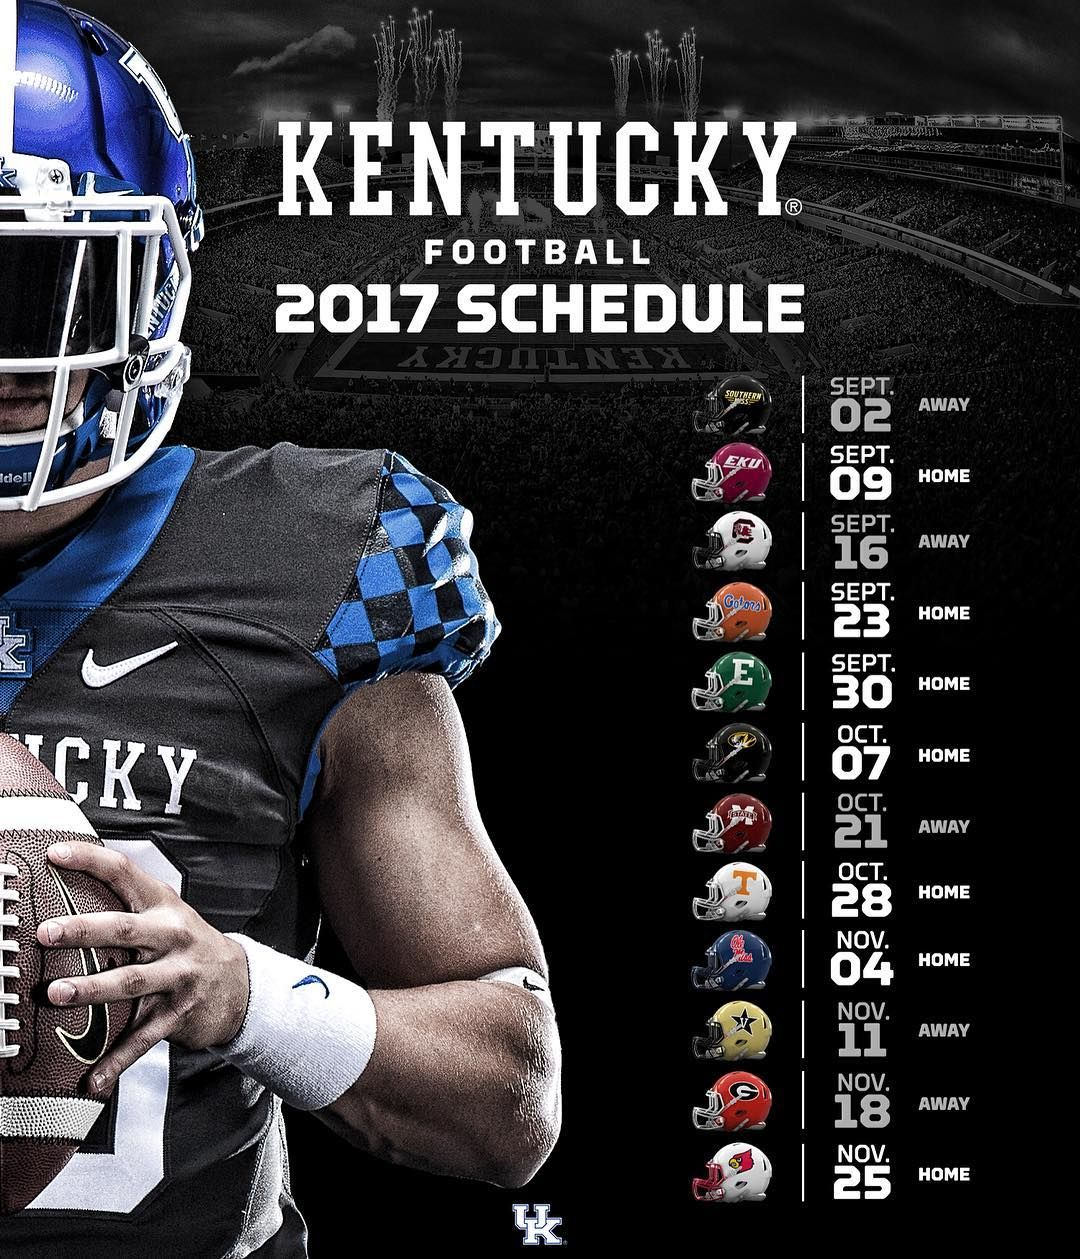 Kentucky's 2017 football schedule was just announced by